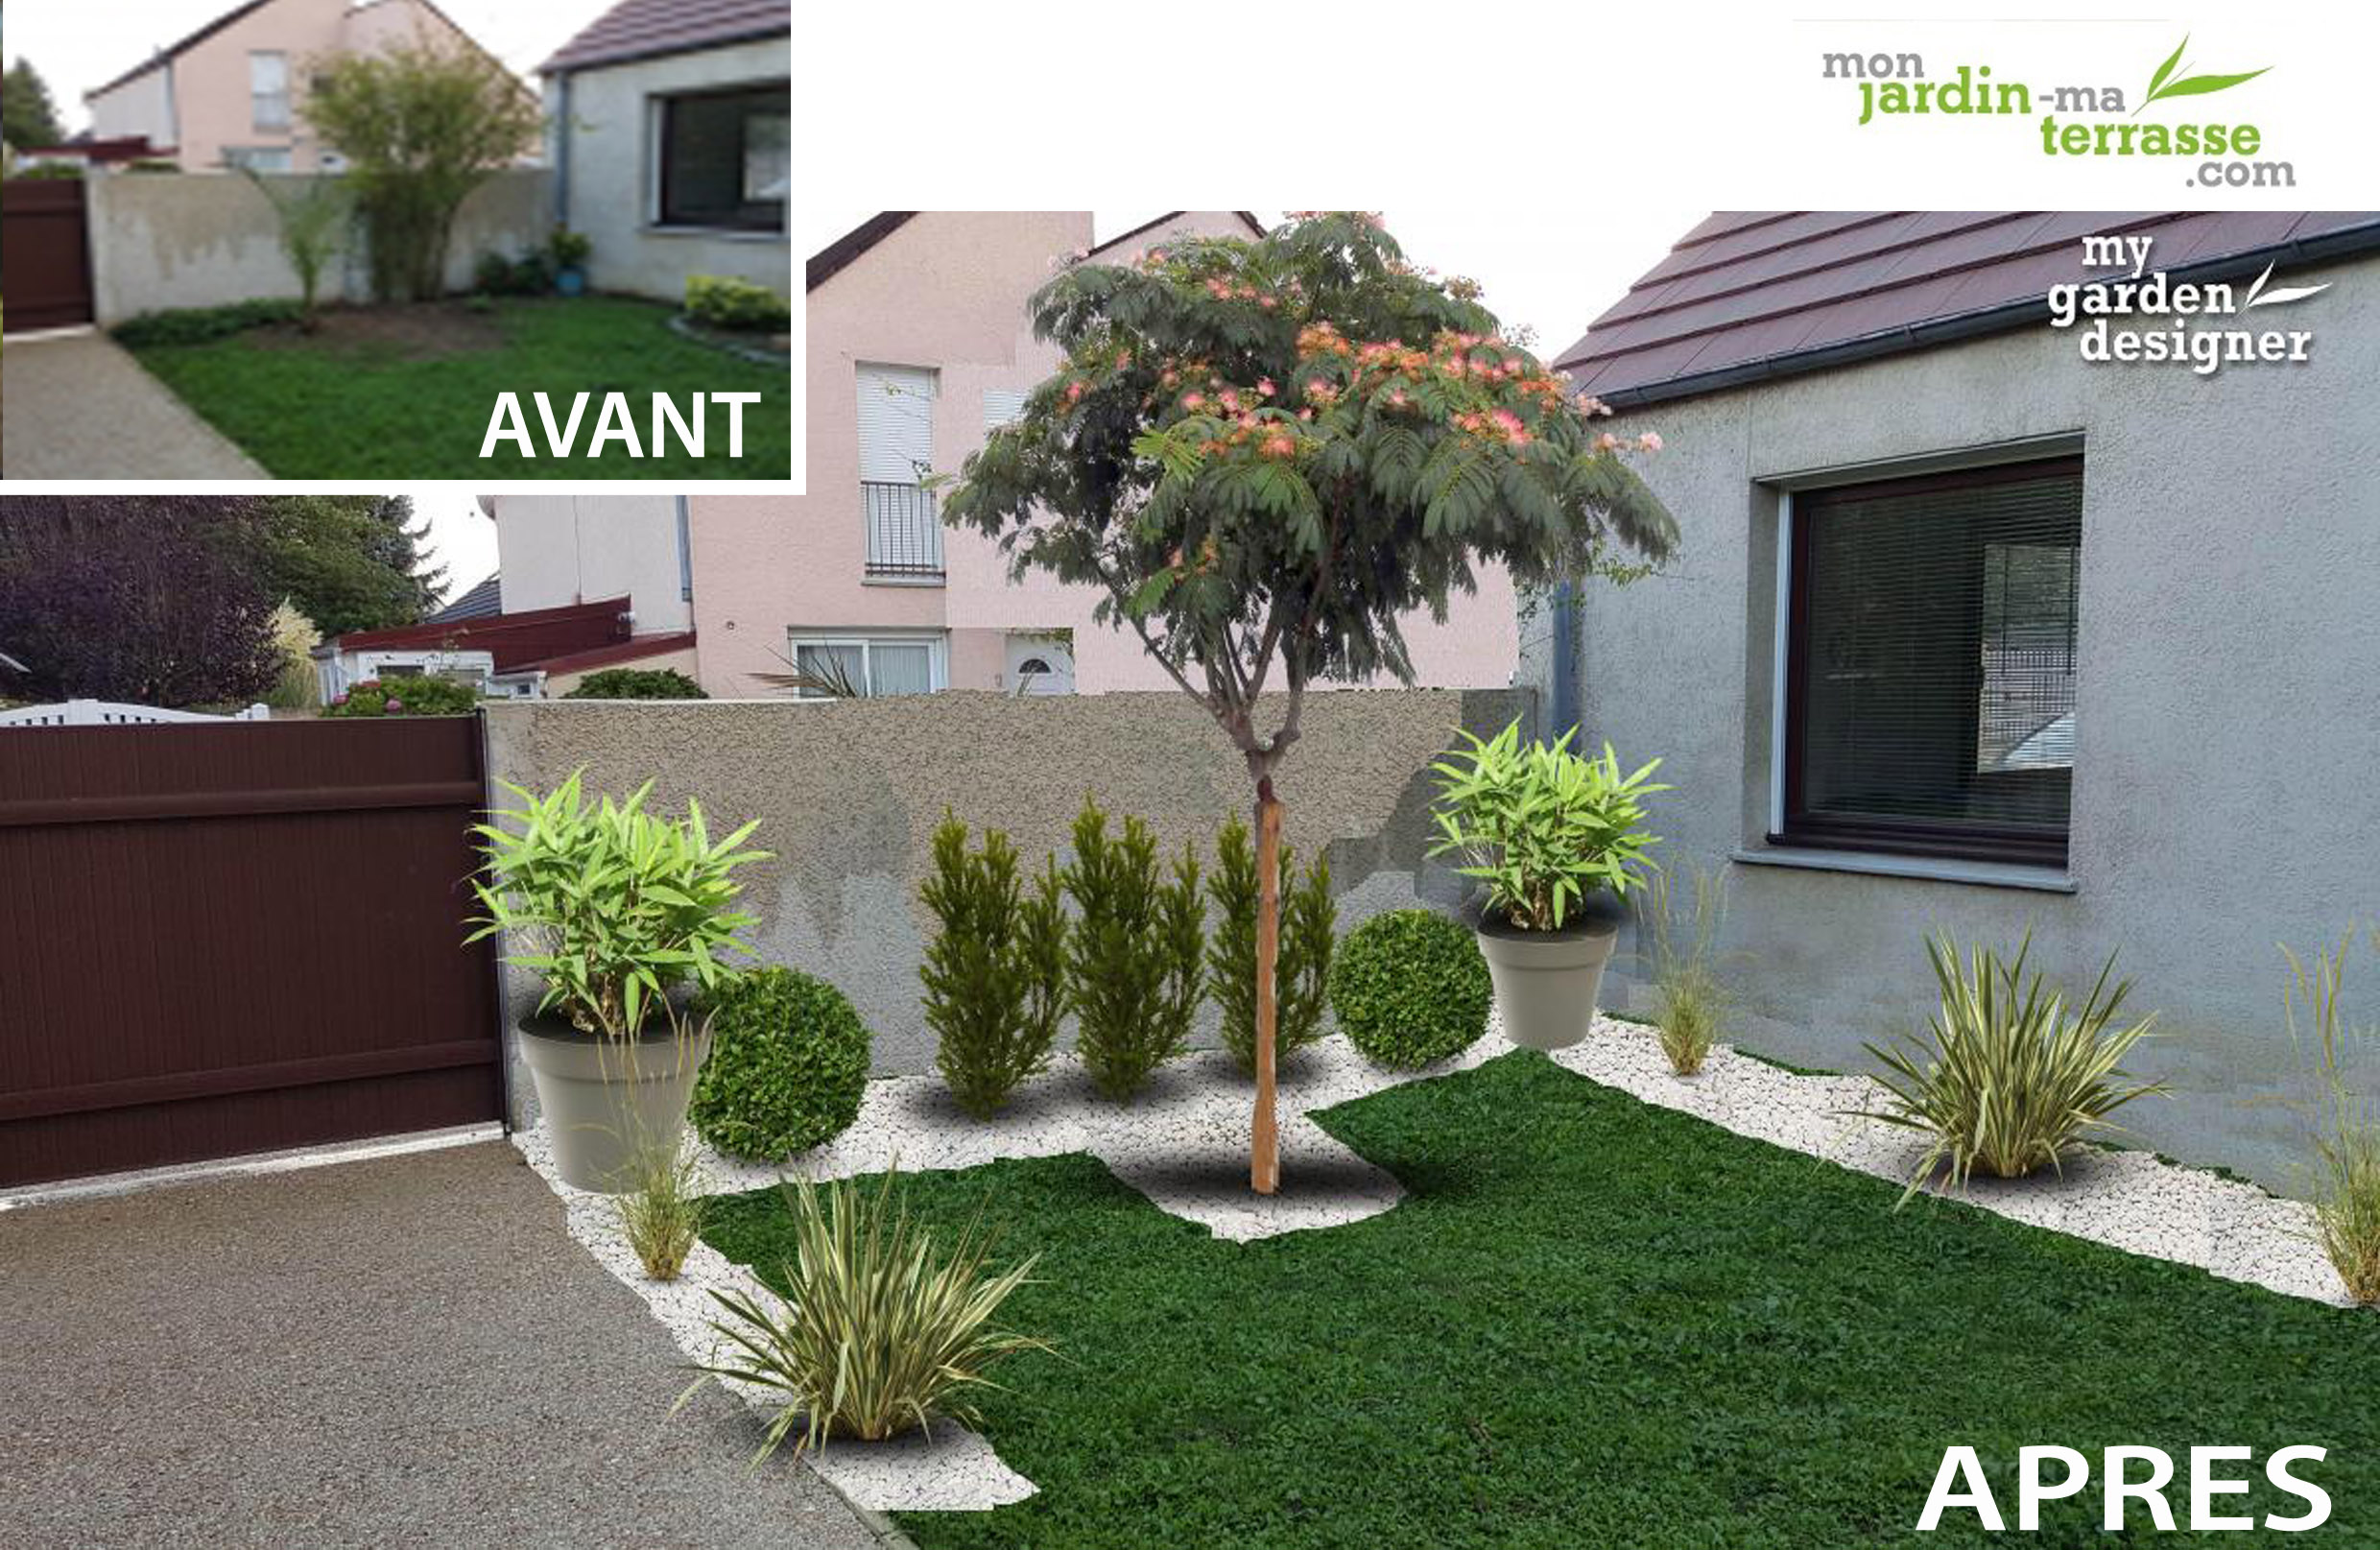 Am nager un petit jardin de 30m monjardin for Amenagement jardin fleuri